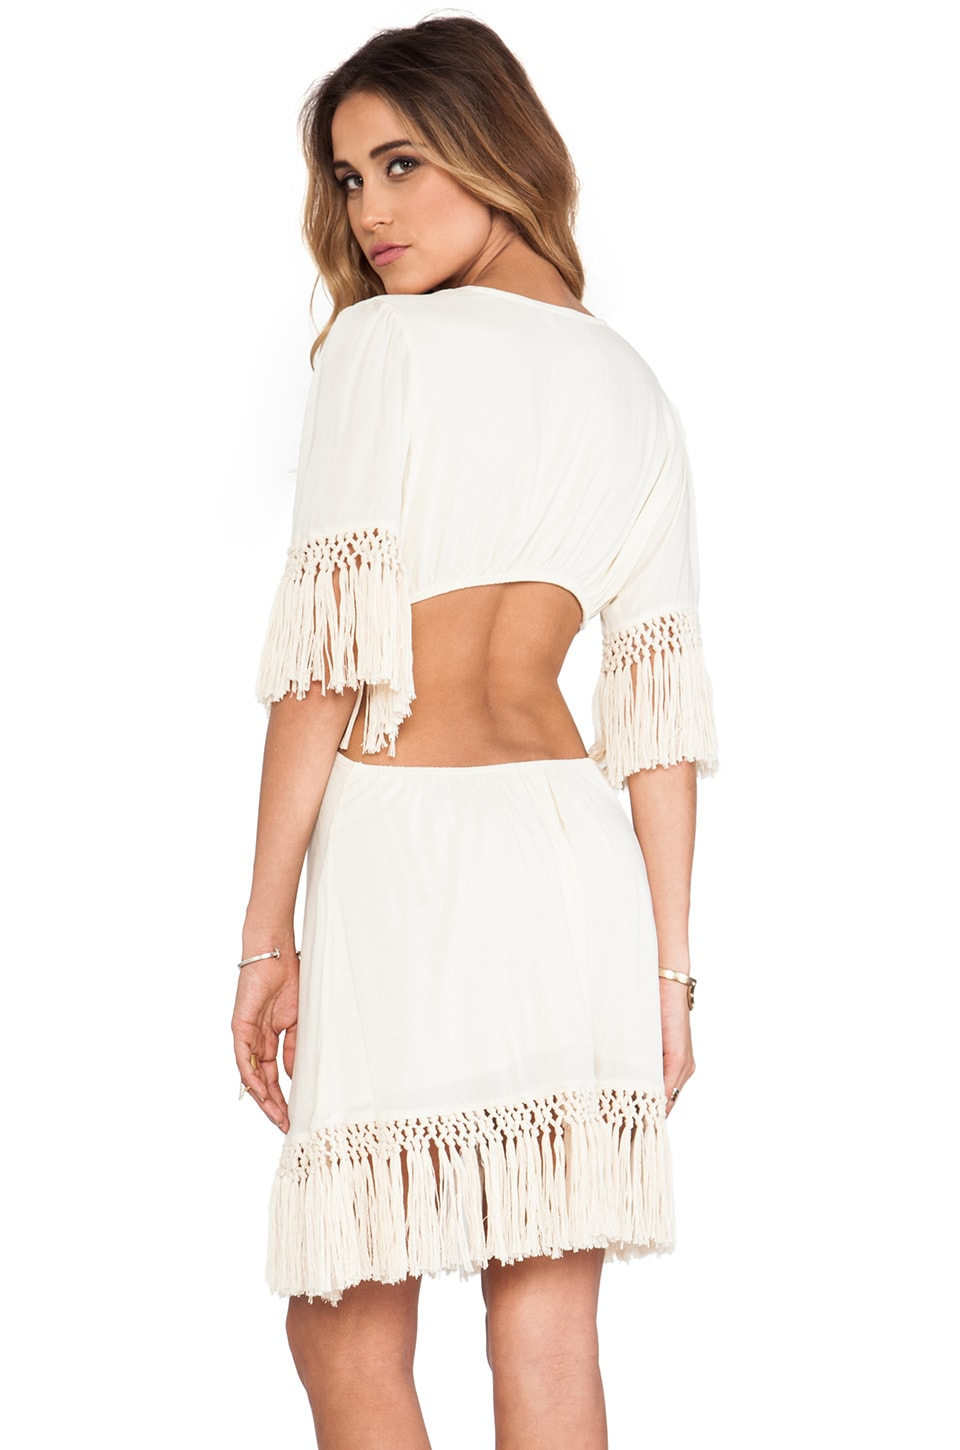 Tiare Hawaii Flyaway Dress in White